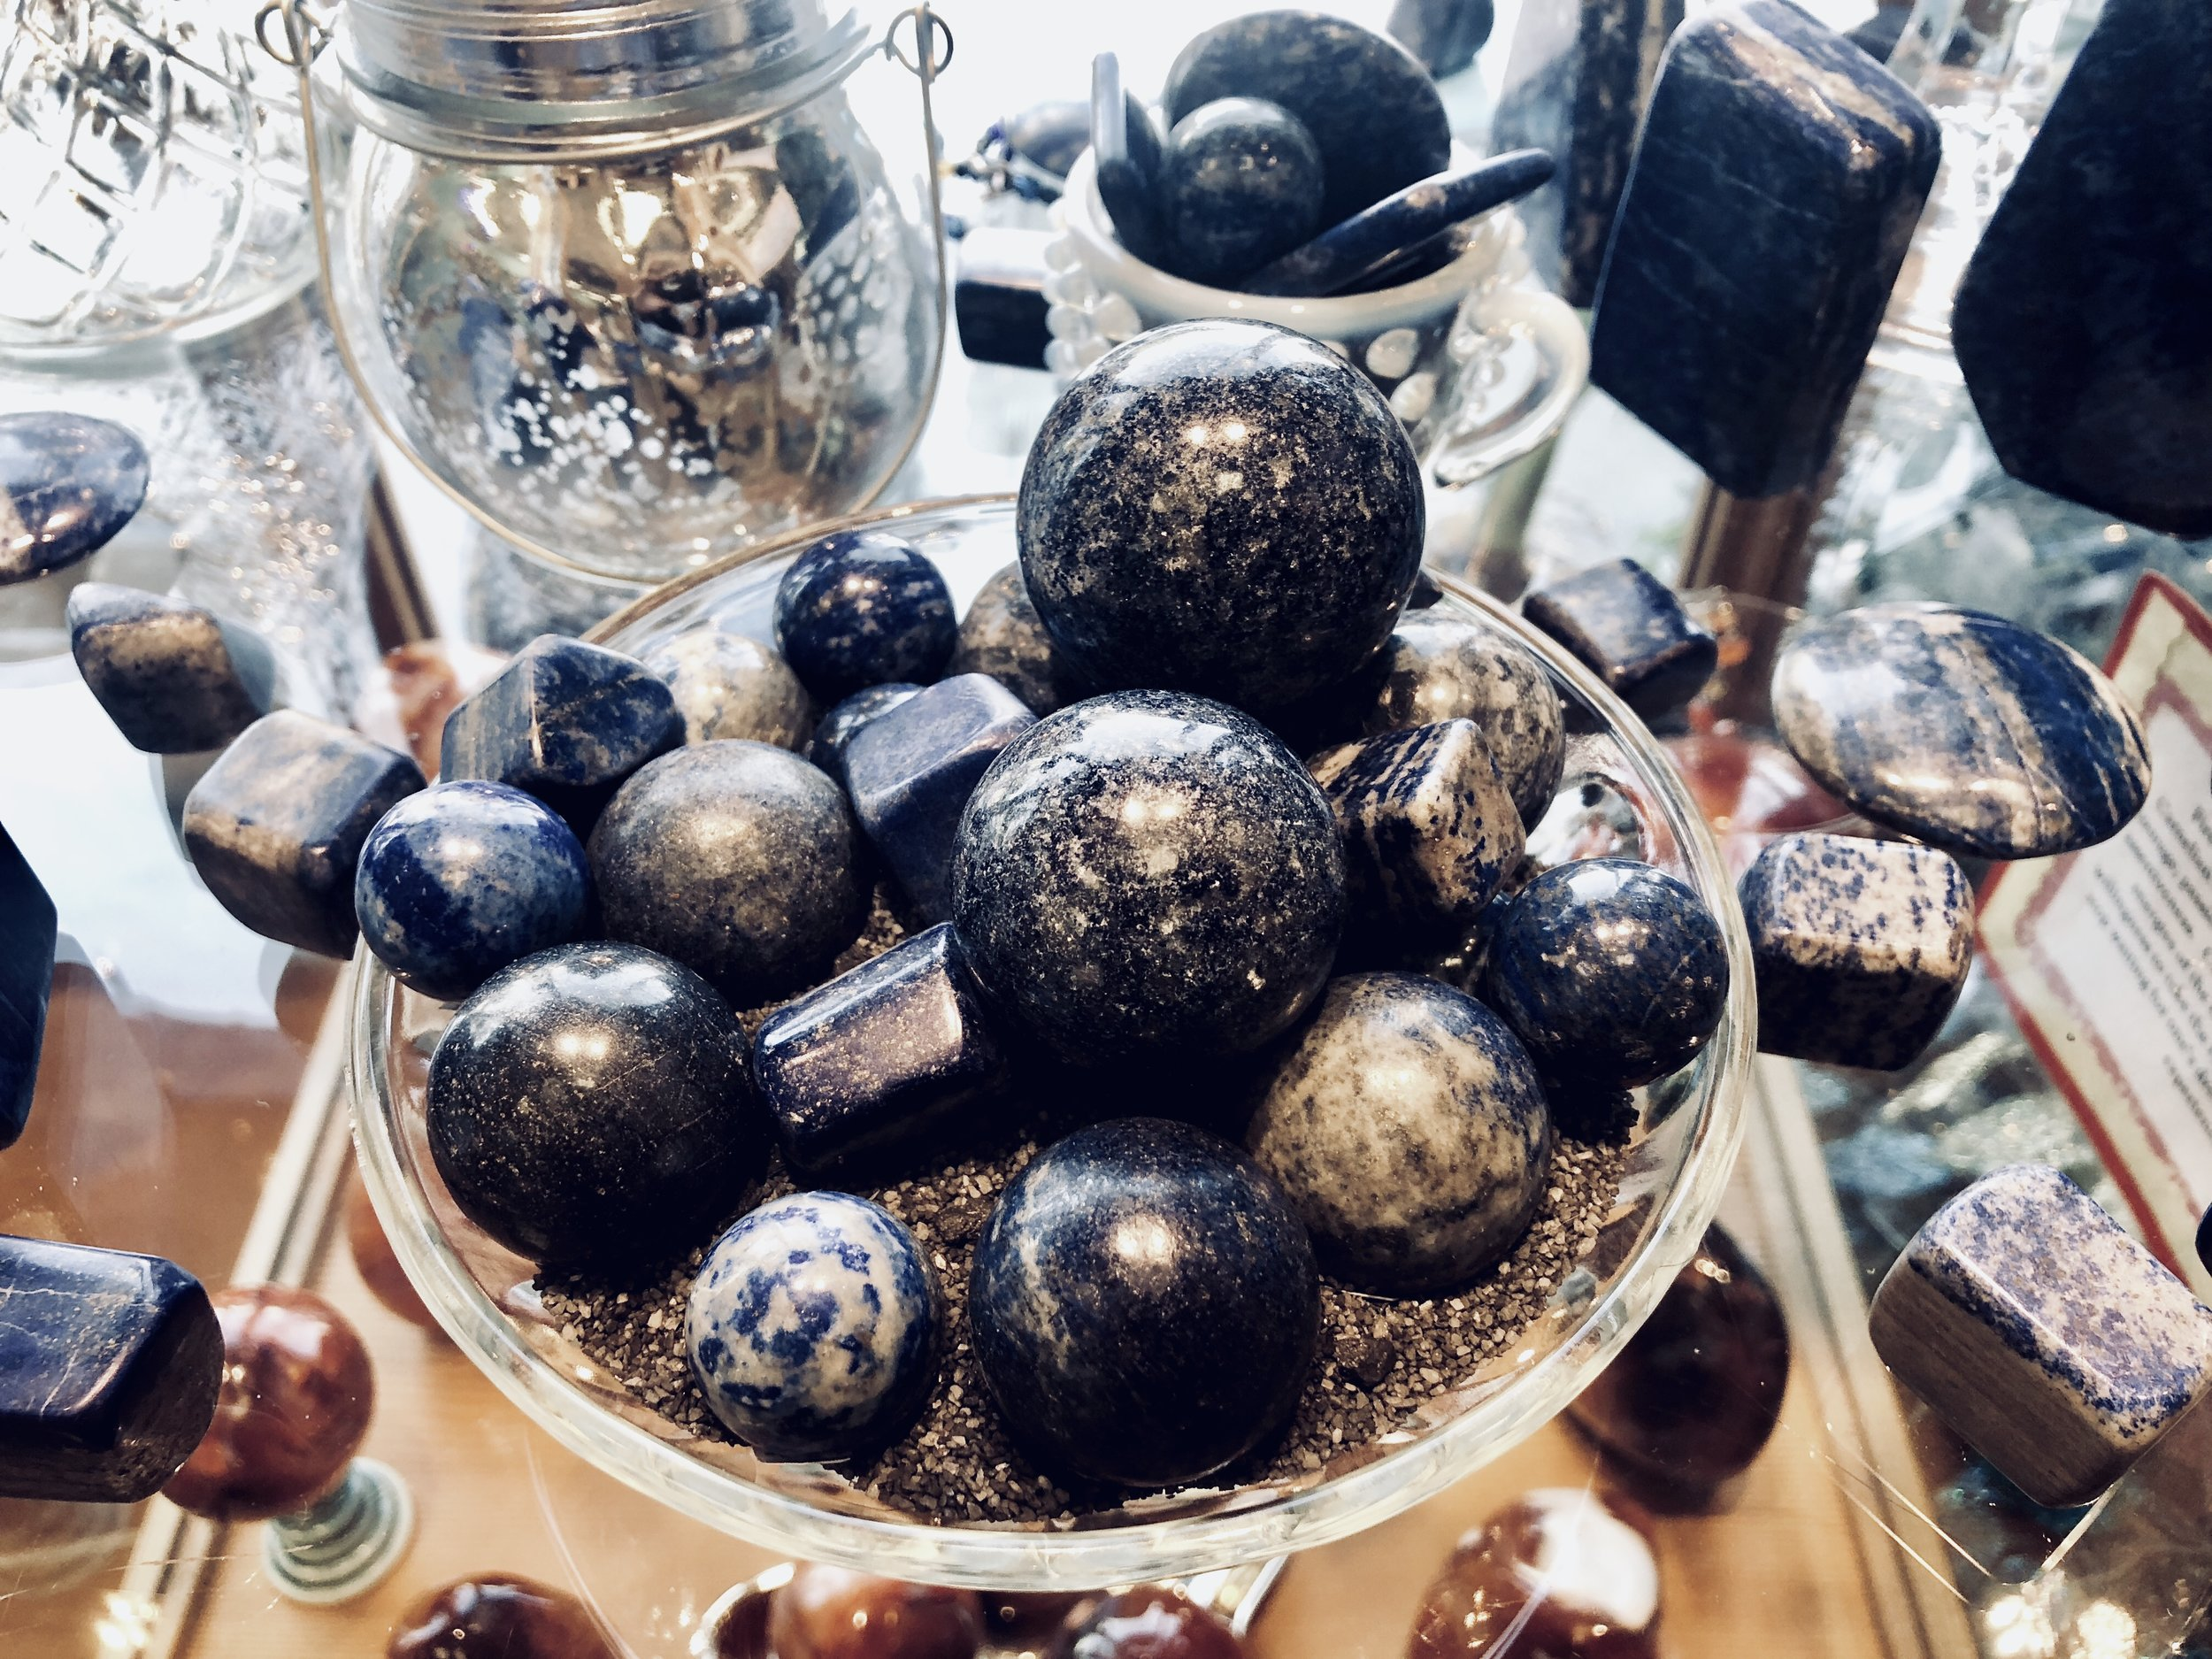 """Holistic Healing with Crystals - """"Clarity within your vibrational energy embraces the journey of your soul giving you clear direction."""" ― Debbie A. Anderson"""